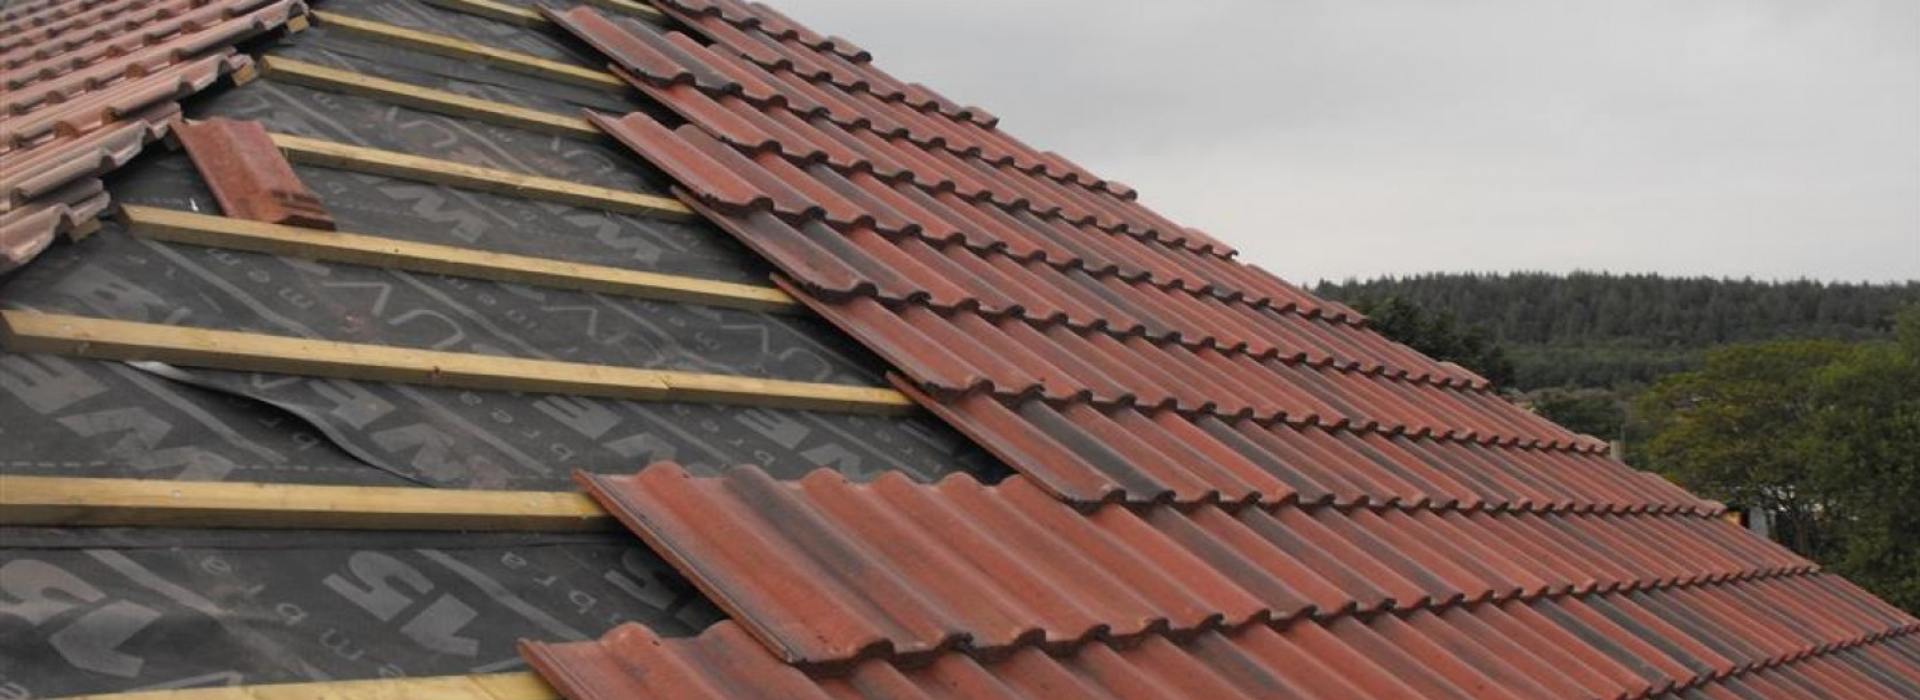 Effective Roof Leakage Repair